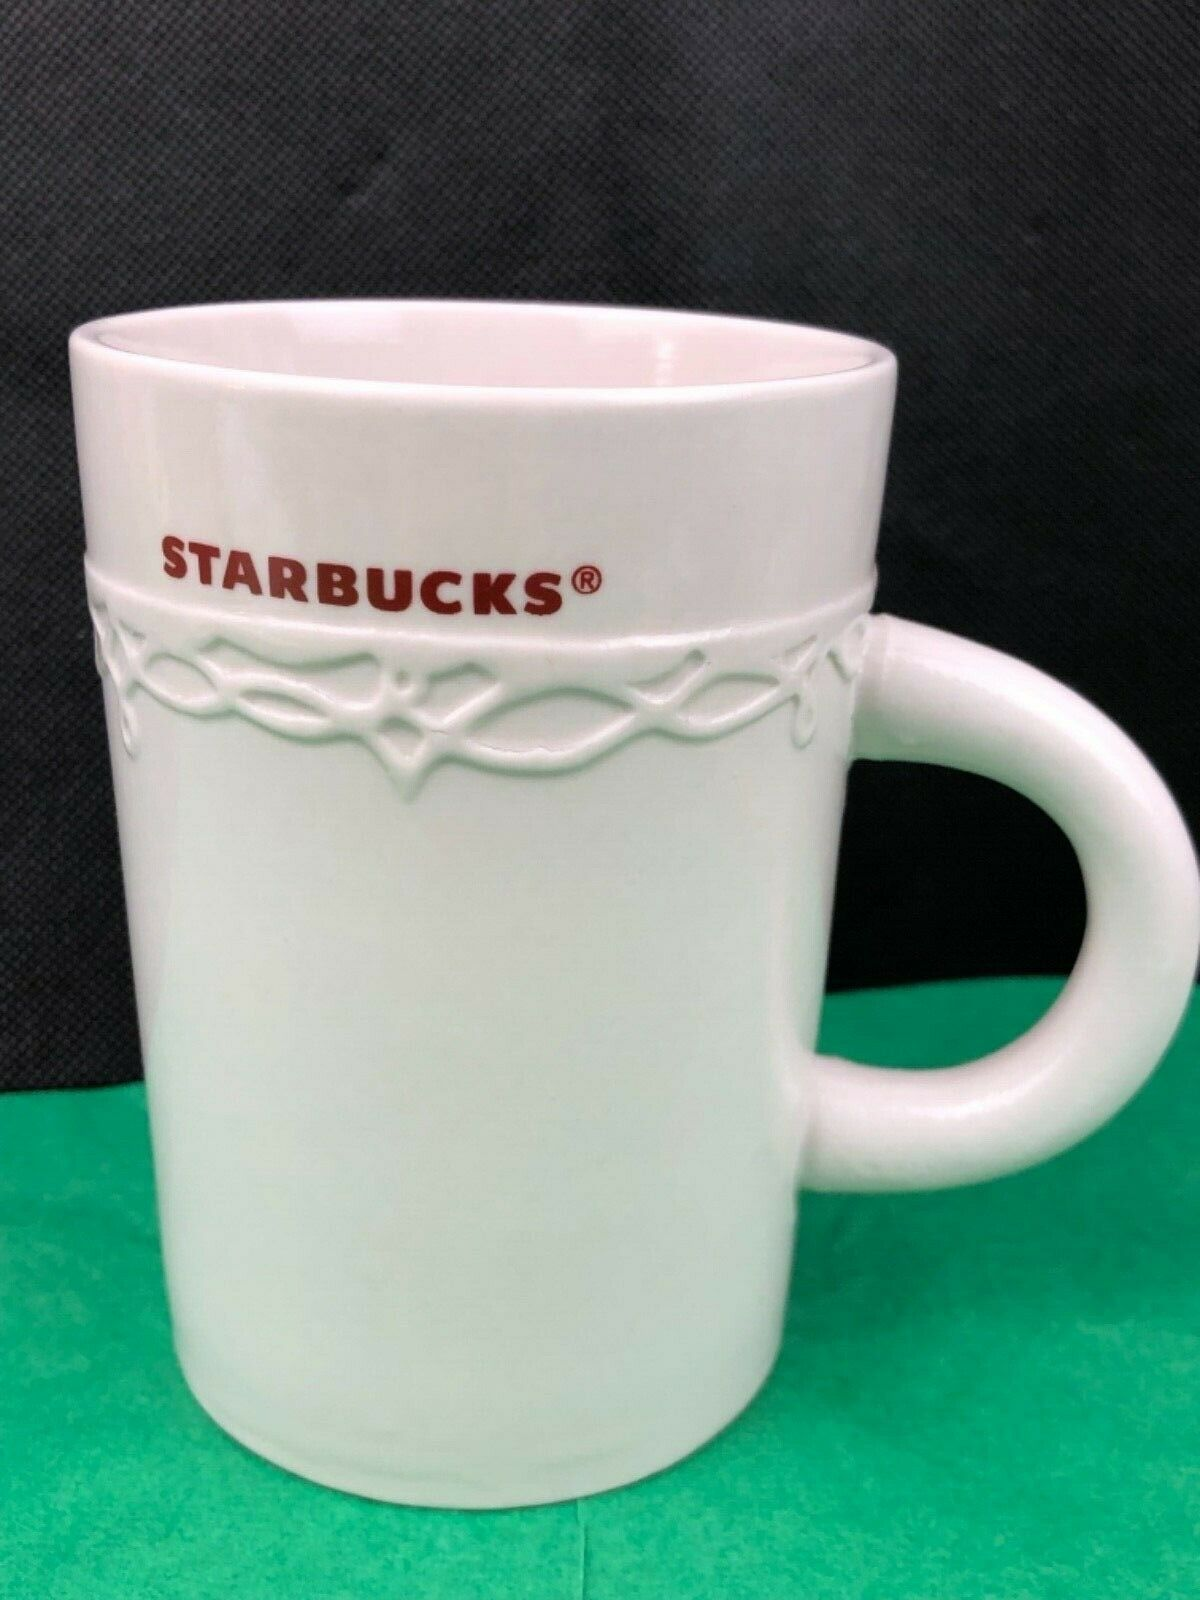 Starbucks 2010 Ceramic Coffee Mug Cup Embossed Design 10 Oz White Ebay Mugs Starbucks Mugs Starbucks